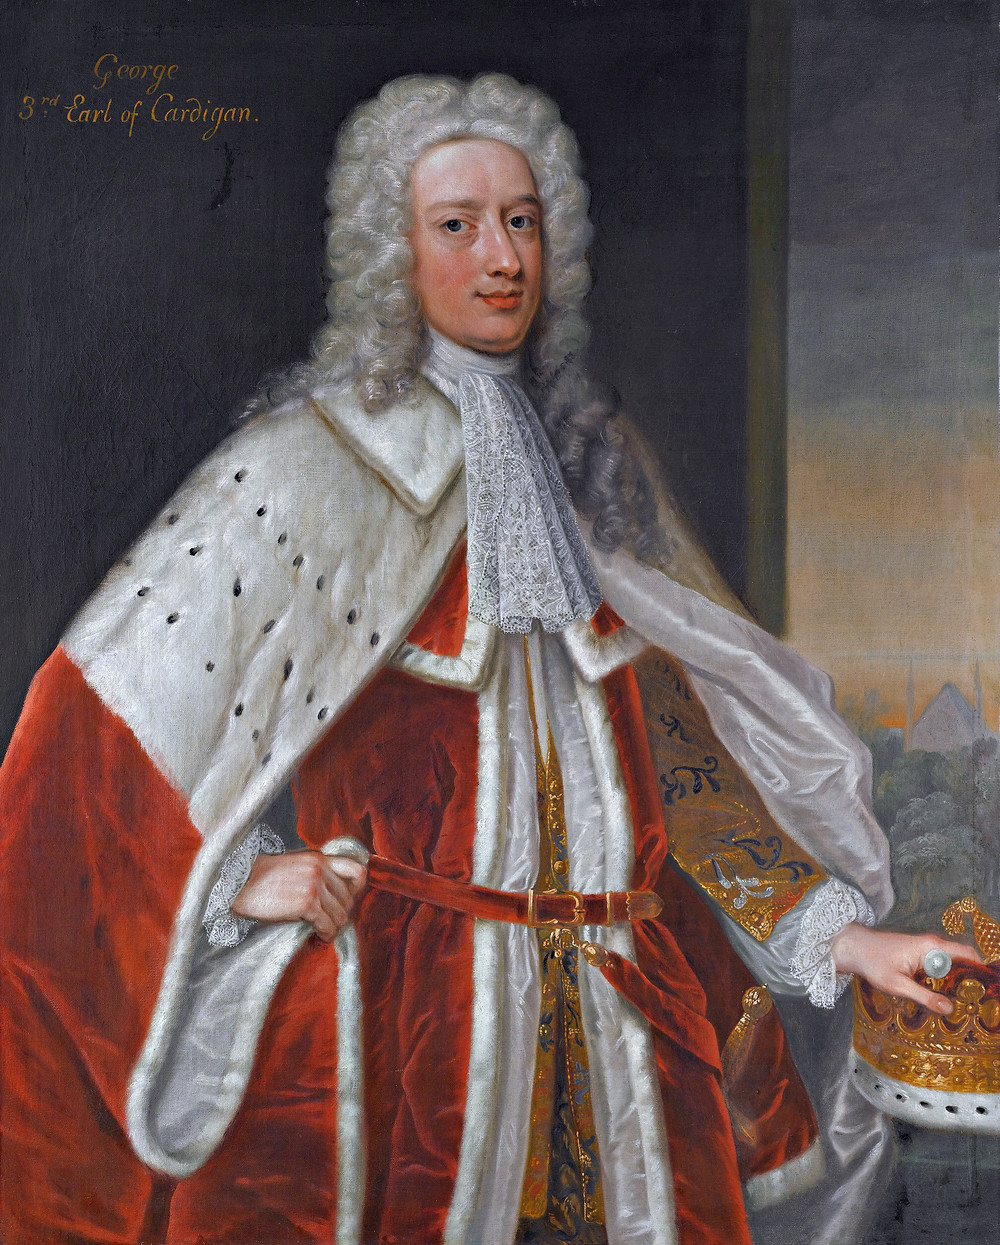 George Brudenall, 3rd Earl of Cardigan, the husband of Elizabeth Bruce, and 7th great grandfather of Eugene Simon.